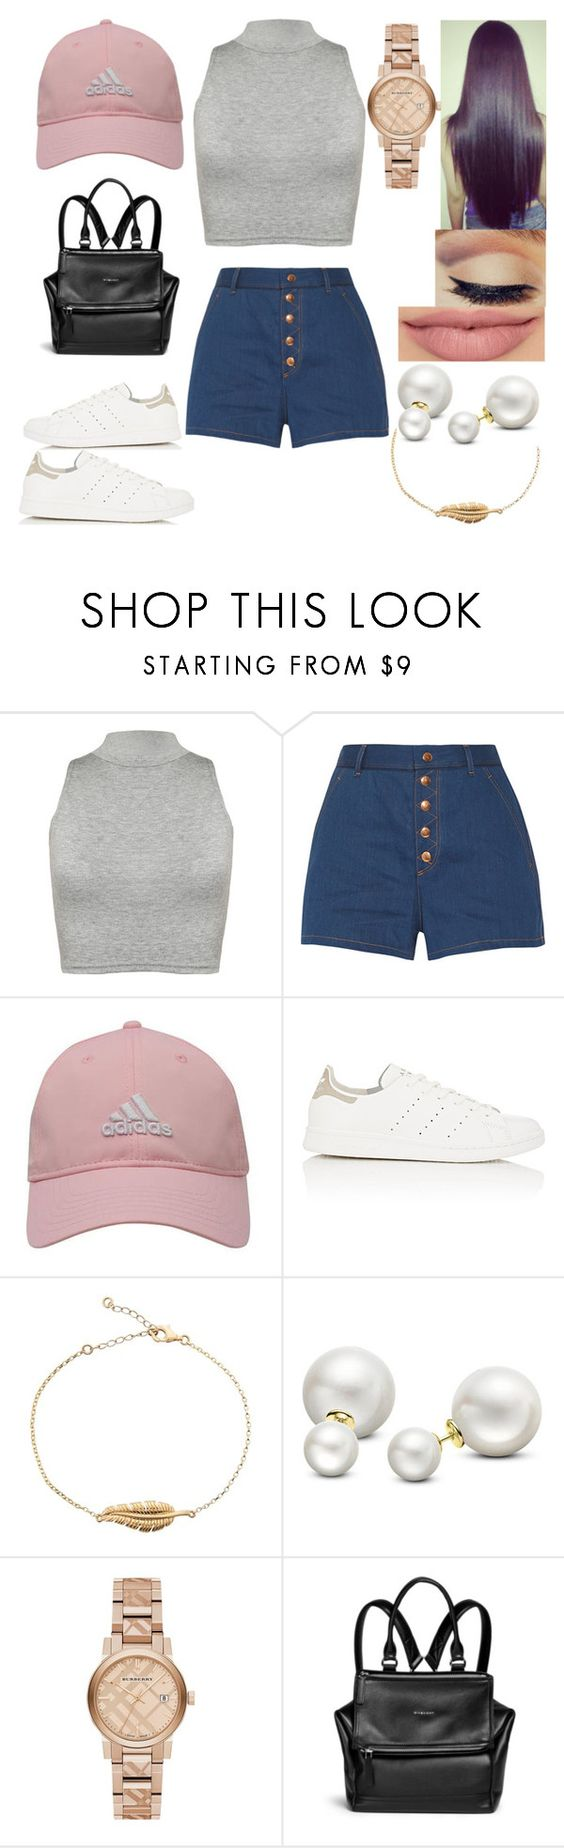 """Tenue n°75"" by styles-of-outfits ❤ liked on Polyvore featuring WearAll, rag & bone, adidas Golf, adidas, Allurez, Burberry and Givenchy"